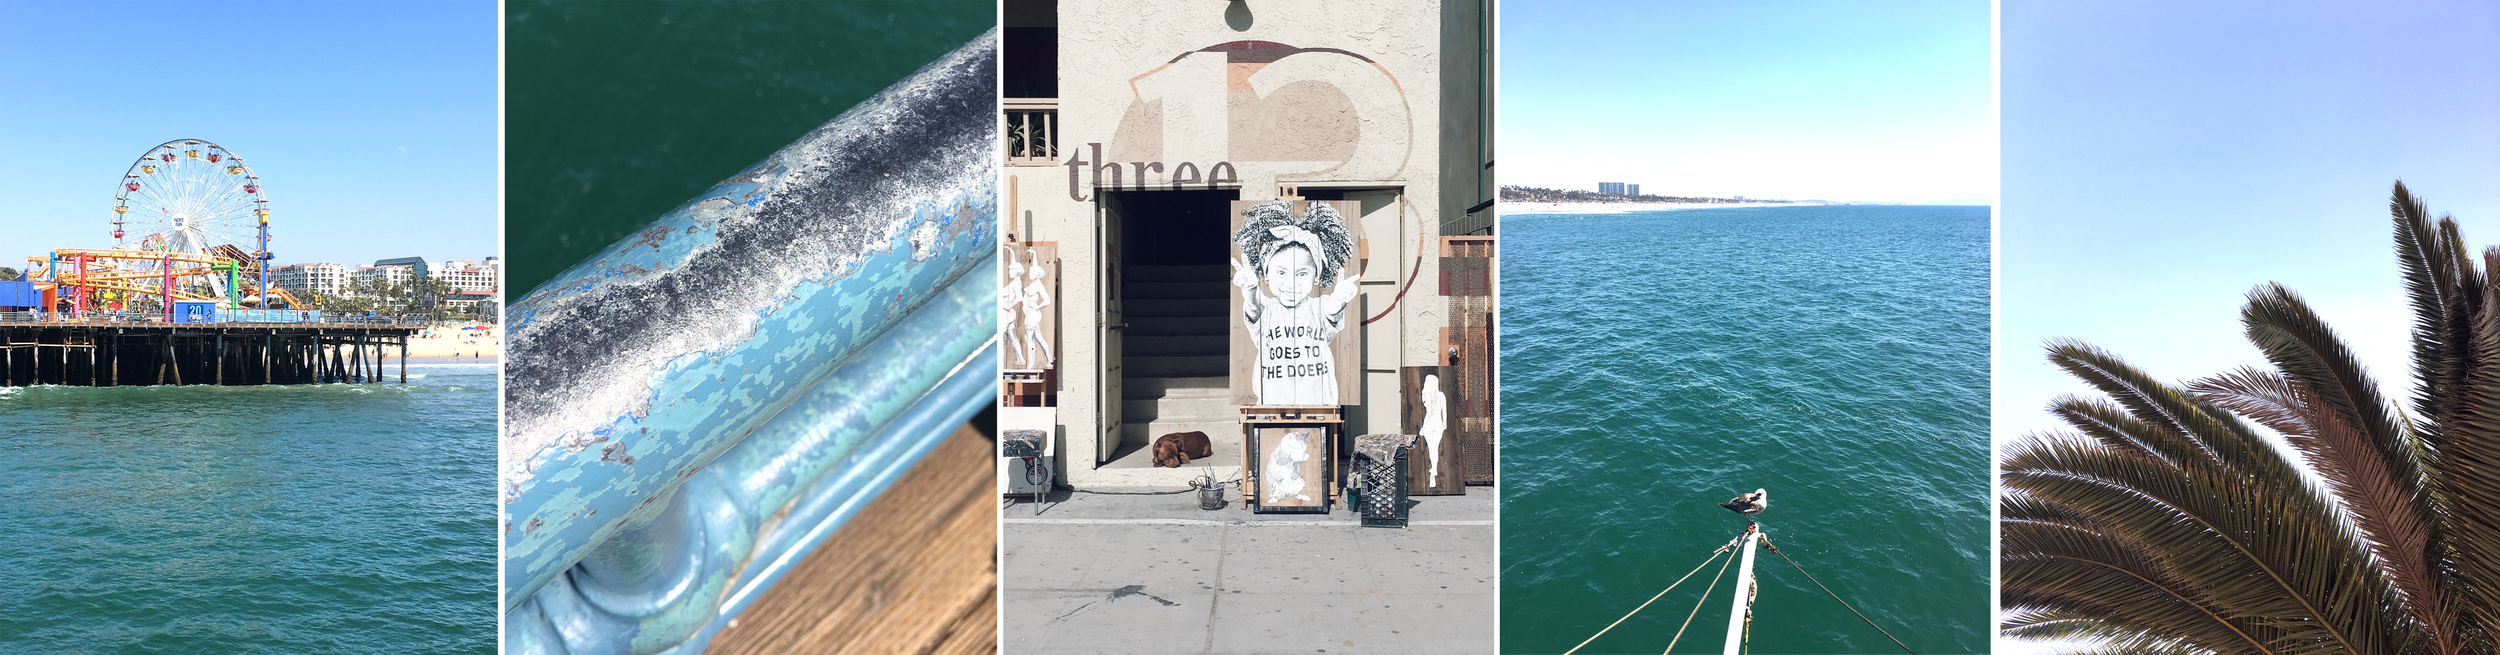 Checking out Venice Beach and the pier.